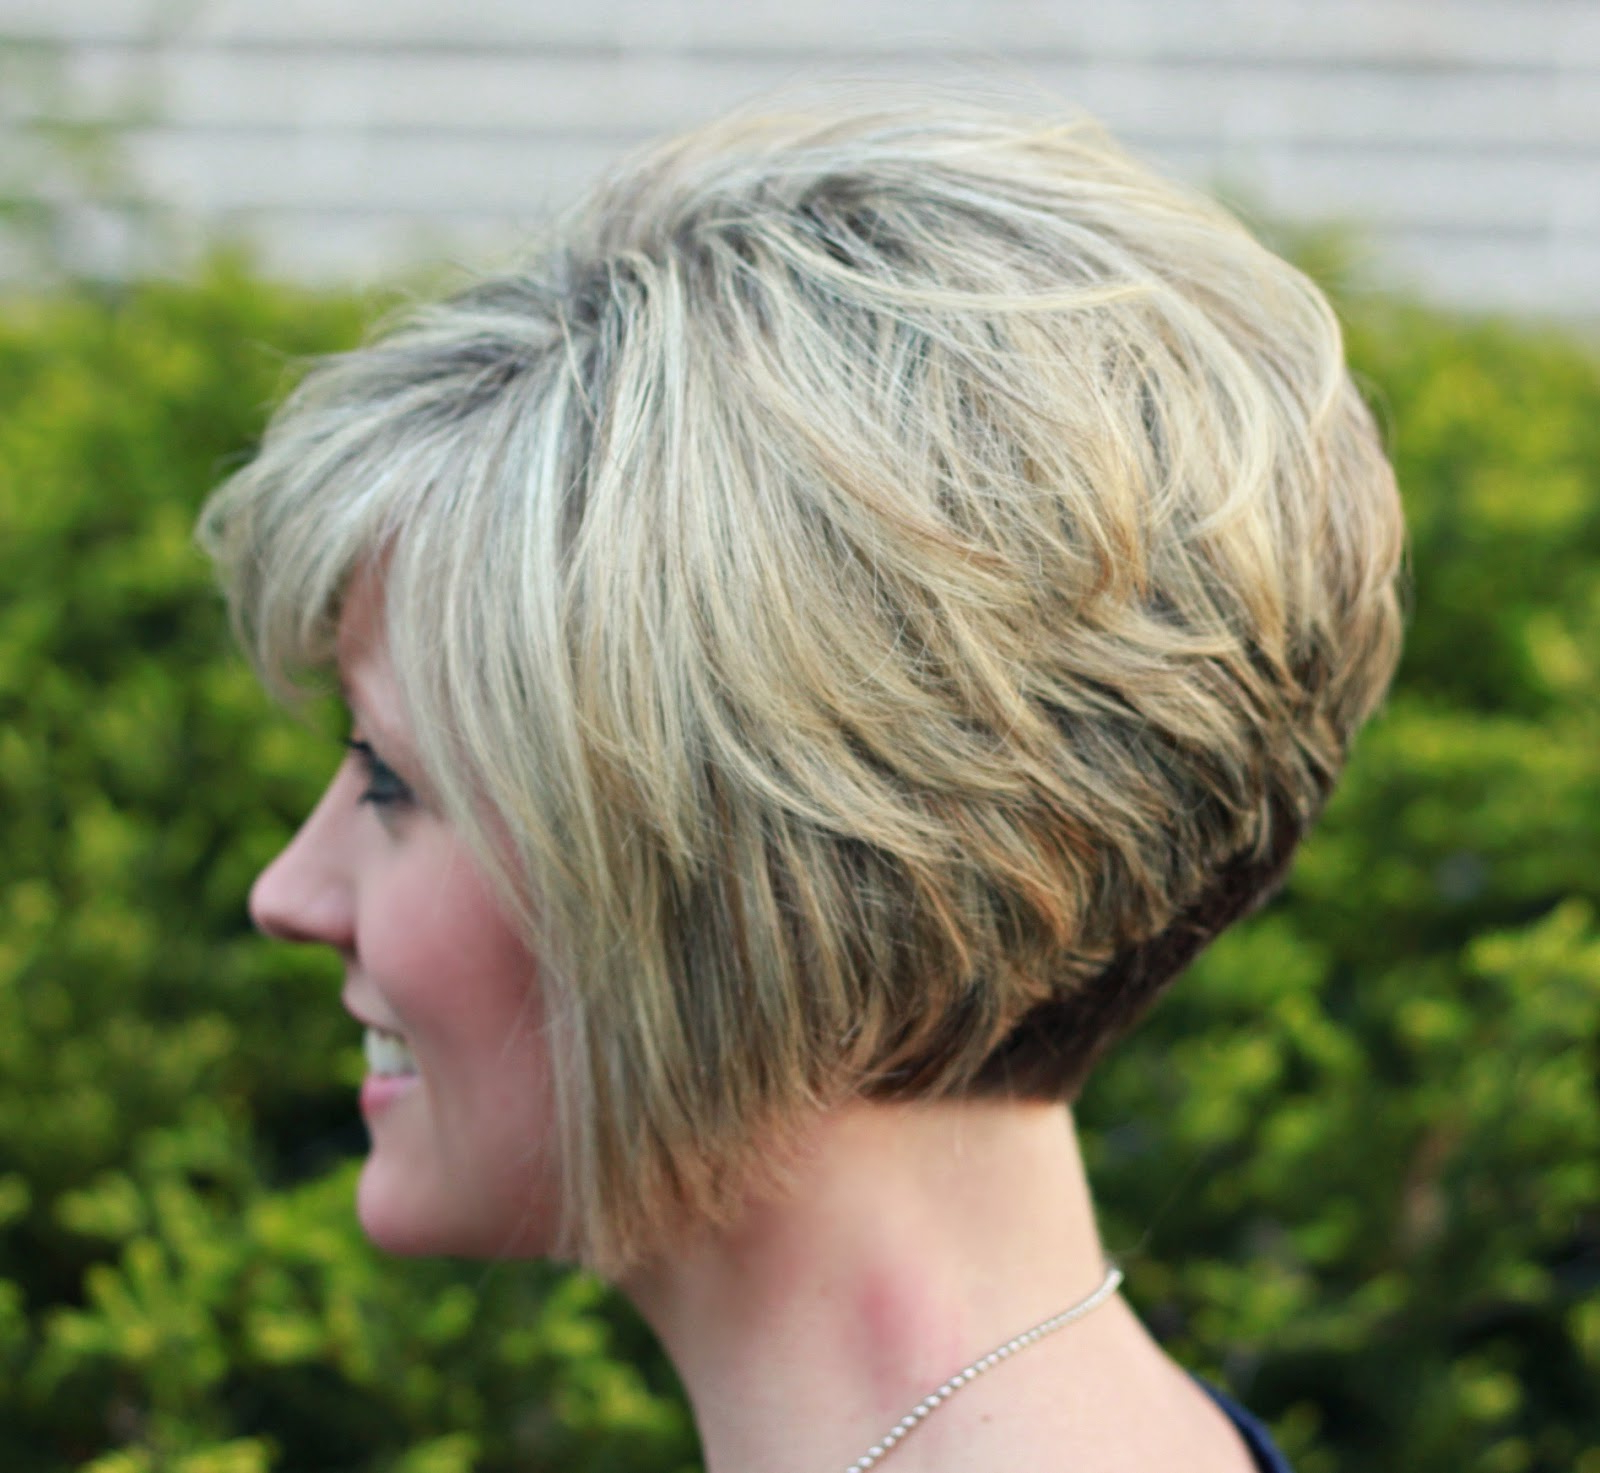 Medium Inverted Bob Hairstyles – Hairstyle For Women & Man Throughout Short Wavy Inverted Bob Hairstyles (View 12 of 20)